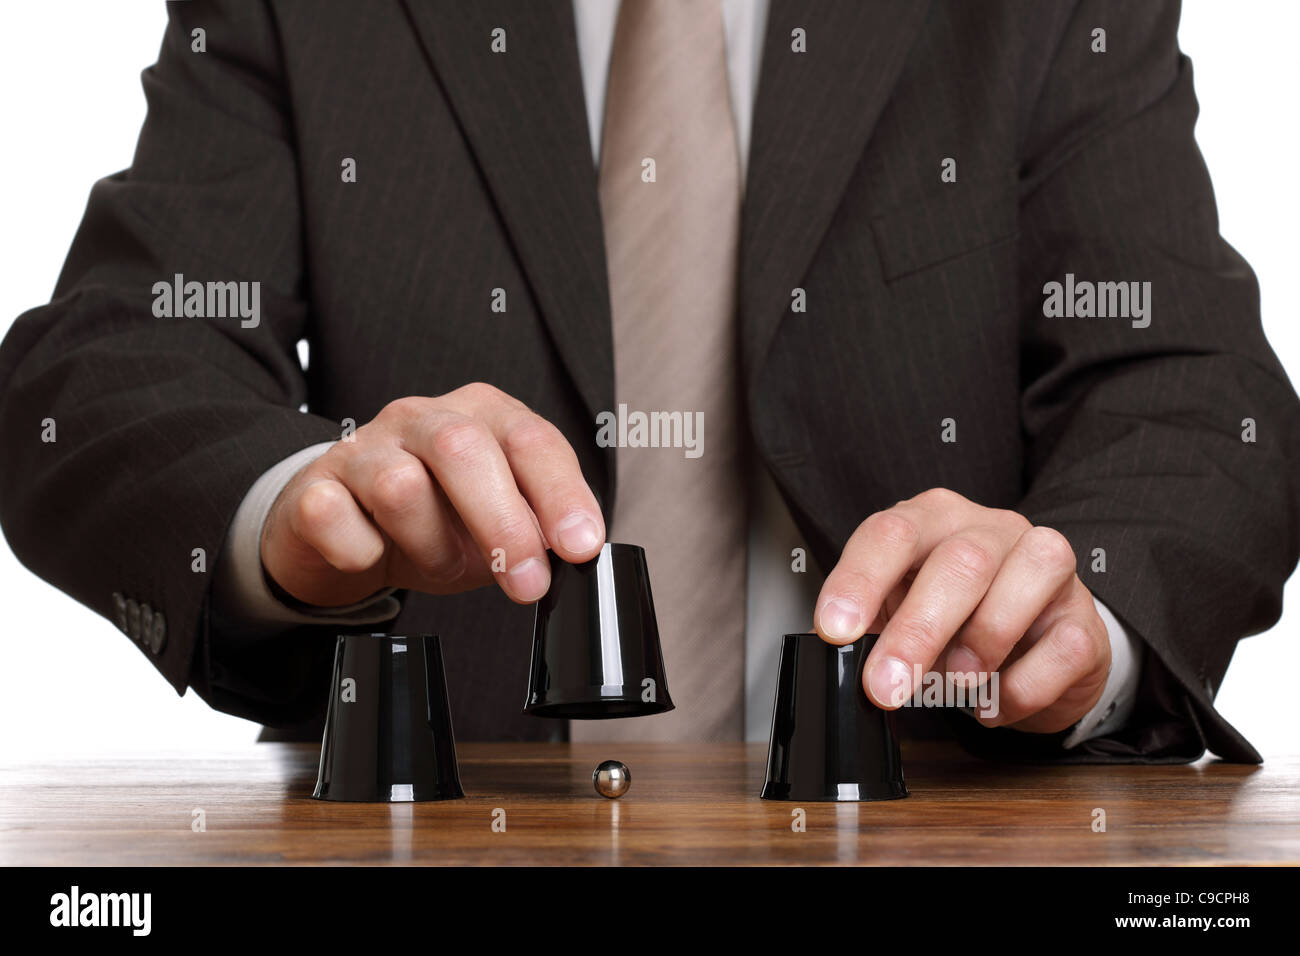 Cup and ball guessing game - Stock Image